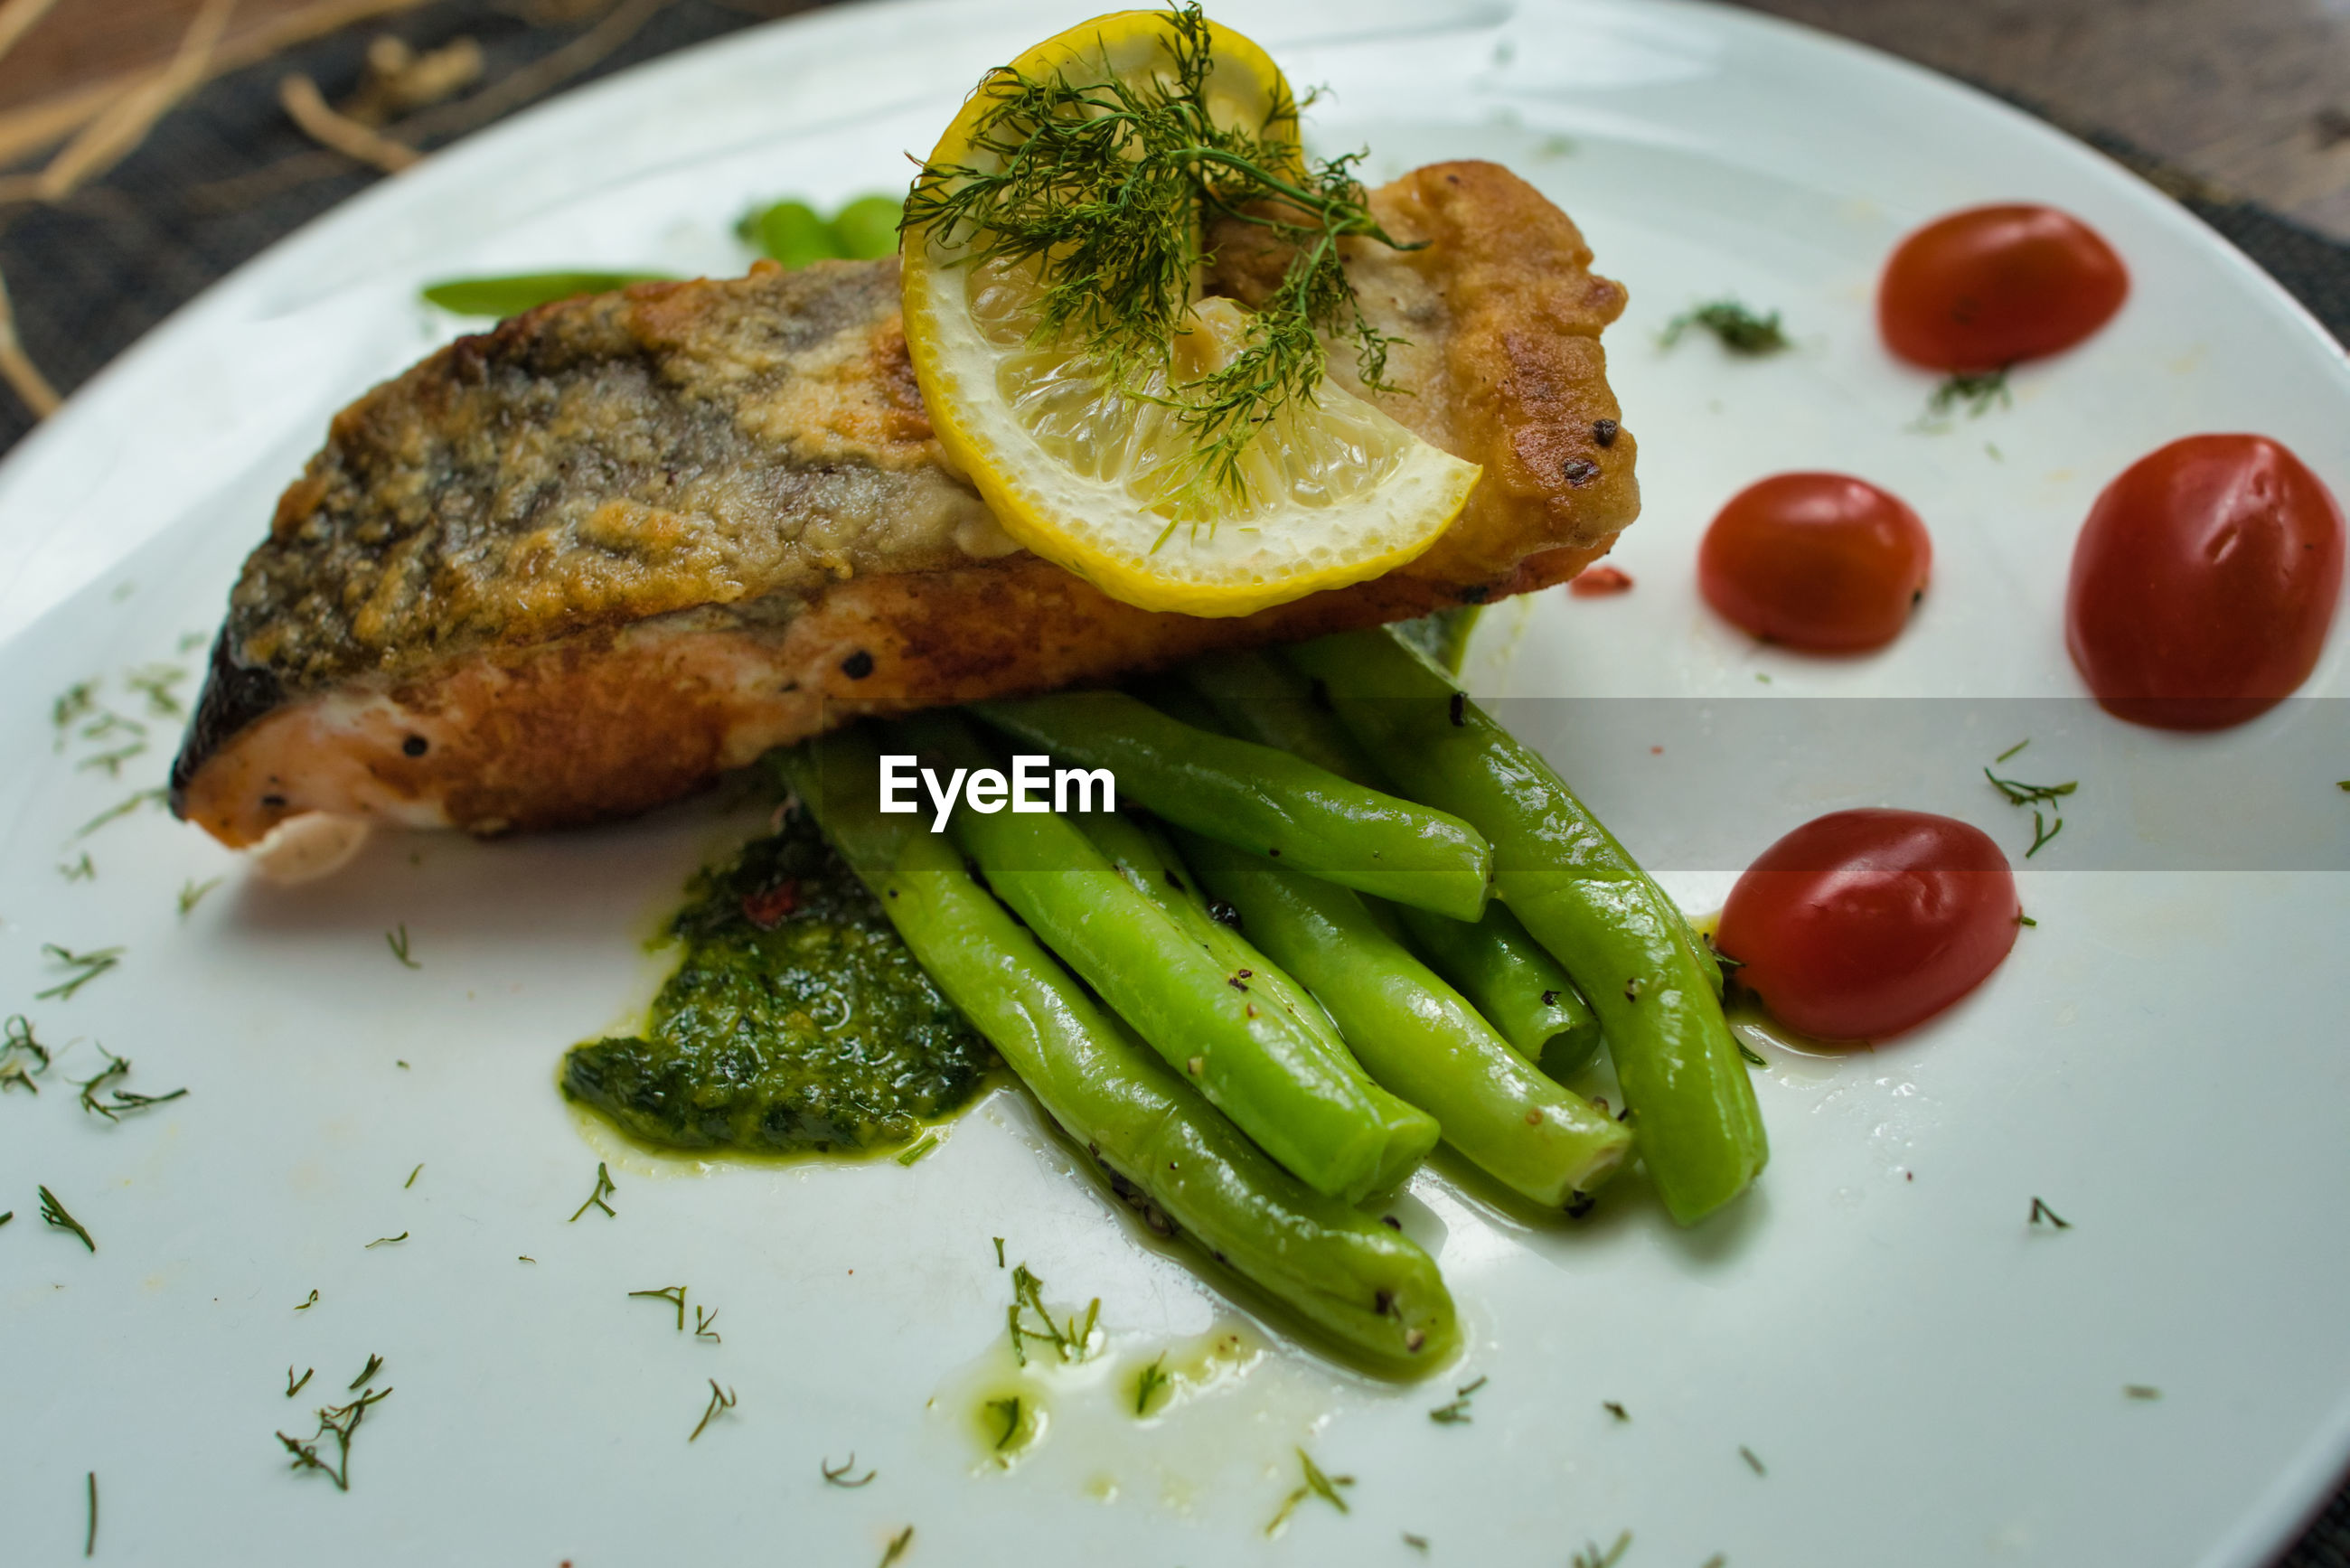 High angle view of salmon in plate